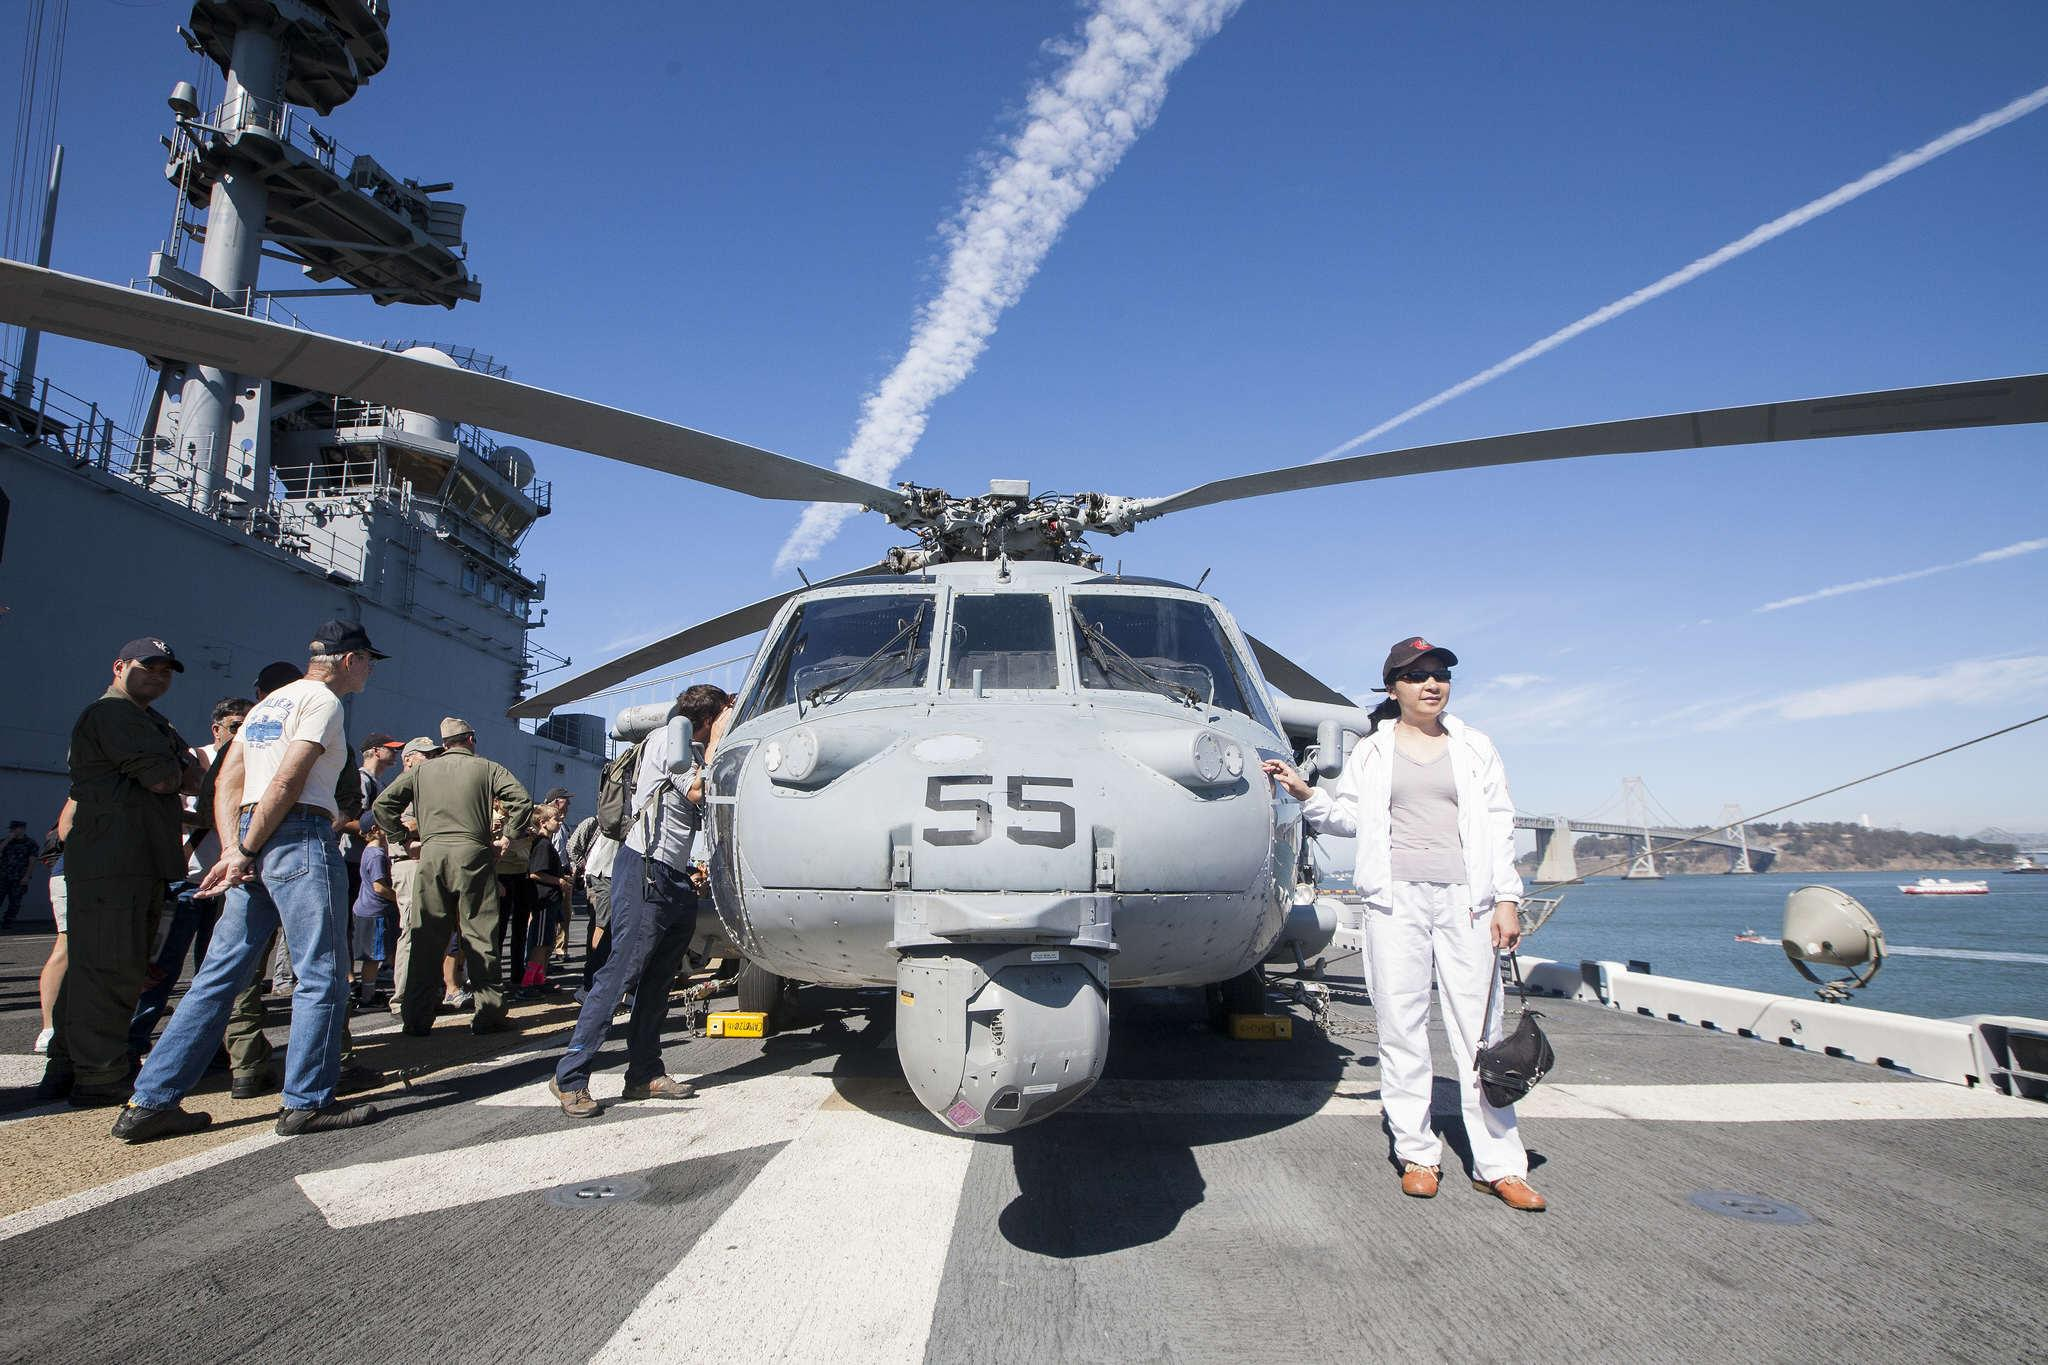 Mandi Yan (right) poses for a photo next to a MH-60S helicopter during a tour onboard the USS America Monday Oct. 13, 2014.